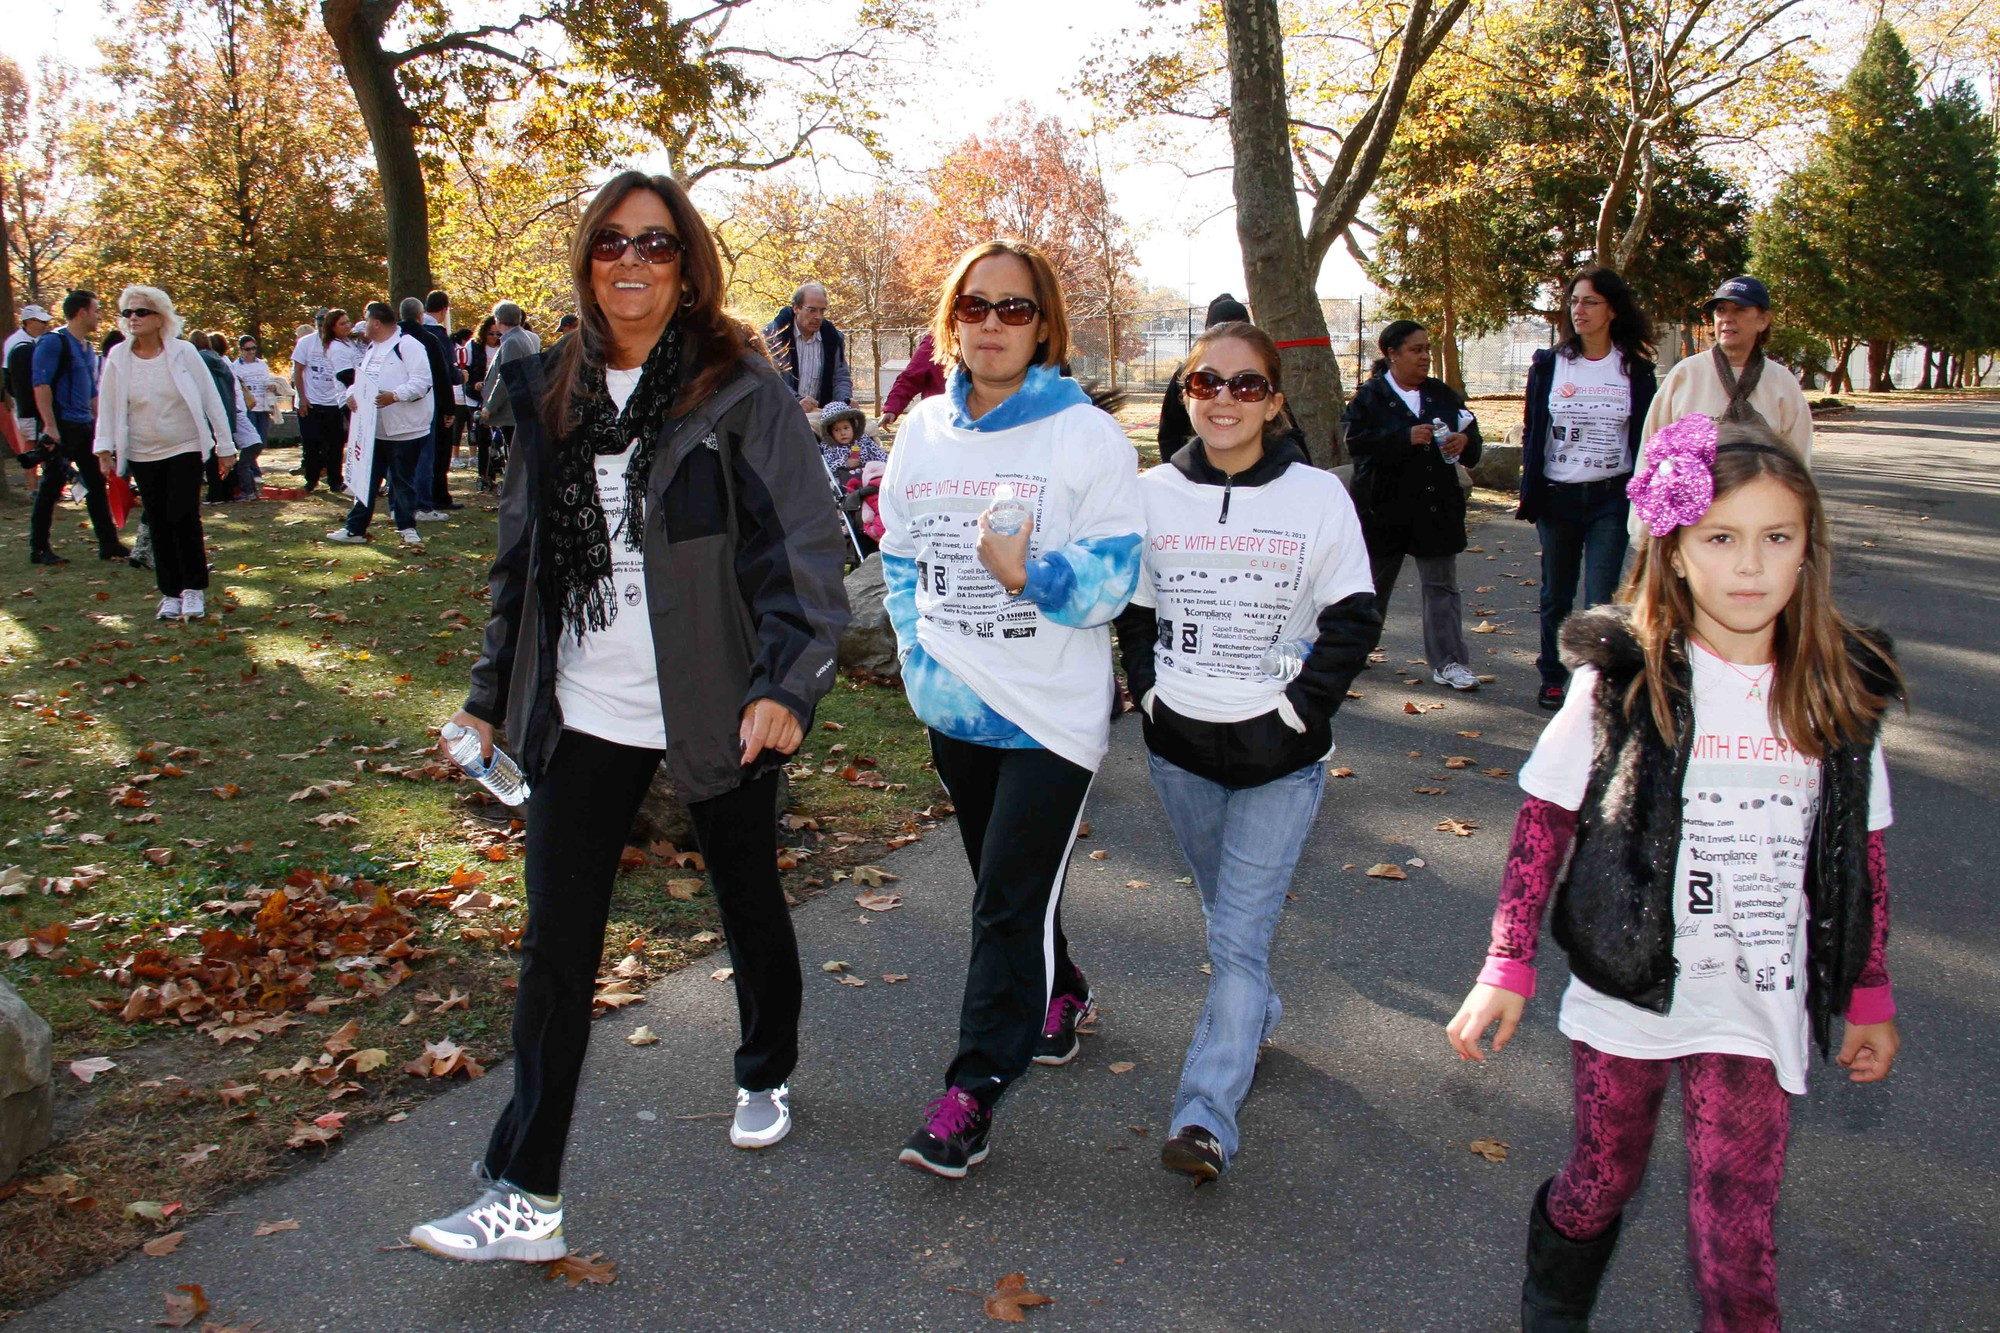 The Family Fun Walk drew about 80 people to Hendrickson Park.